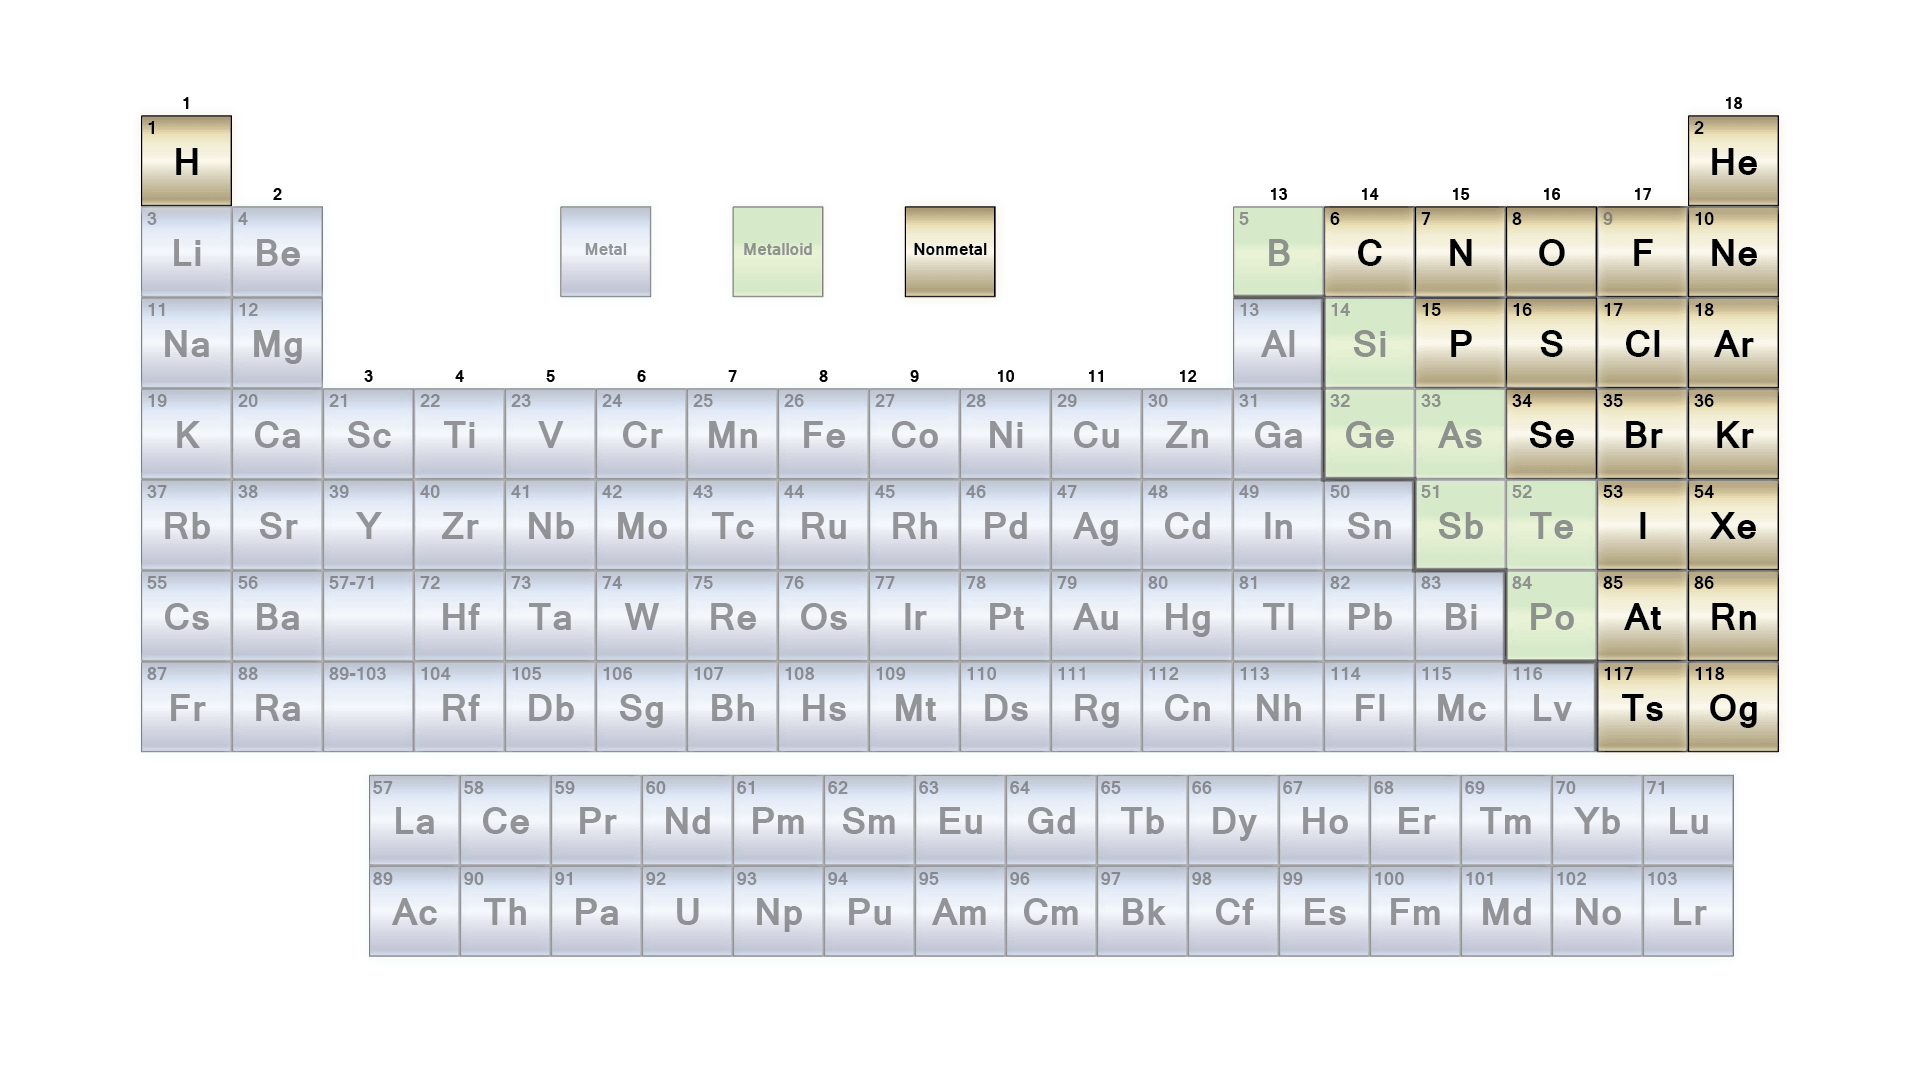 periodic table nonmetals 2017 - In The Periodic Table As The Atomic Number Increases From 11 To 17